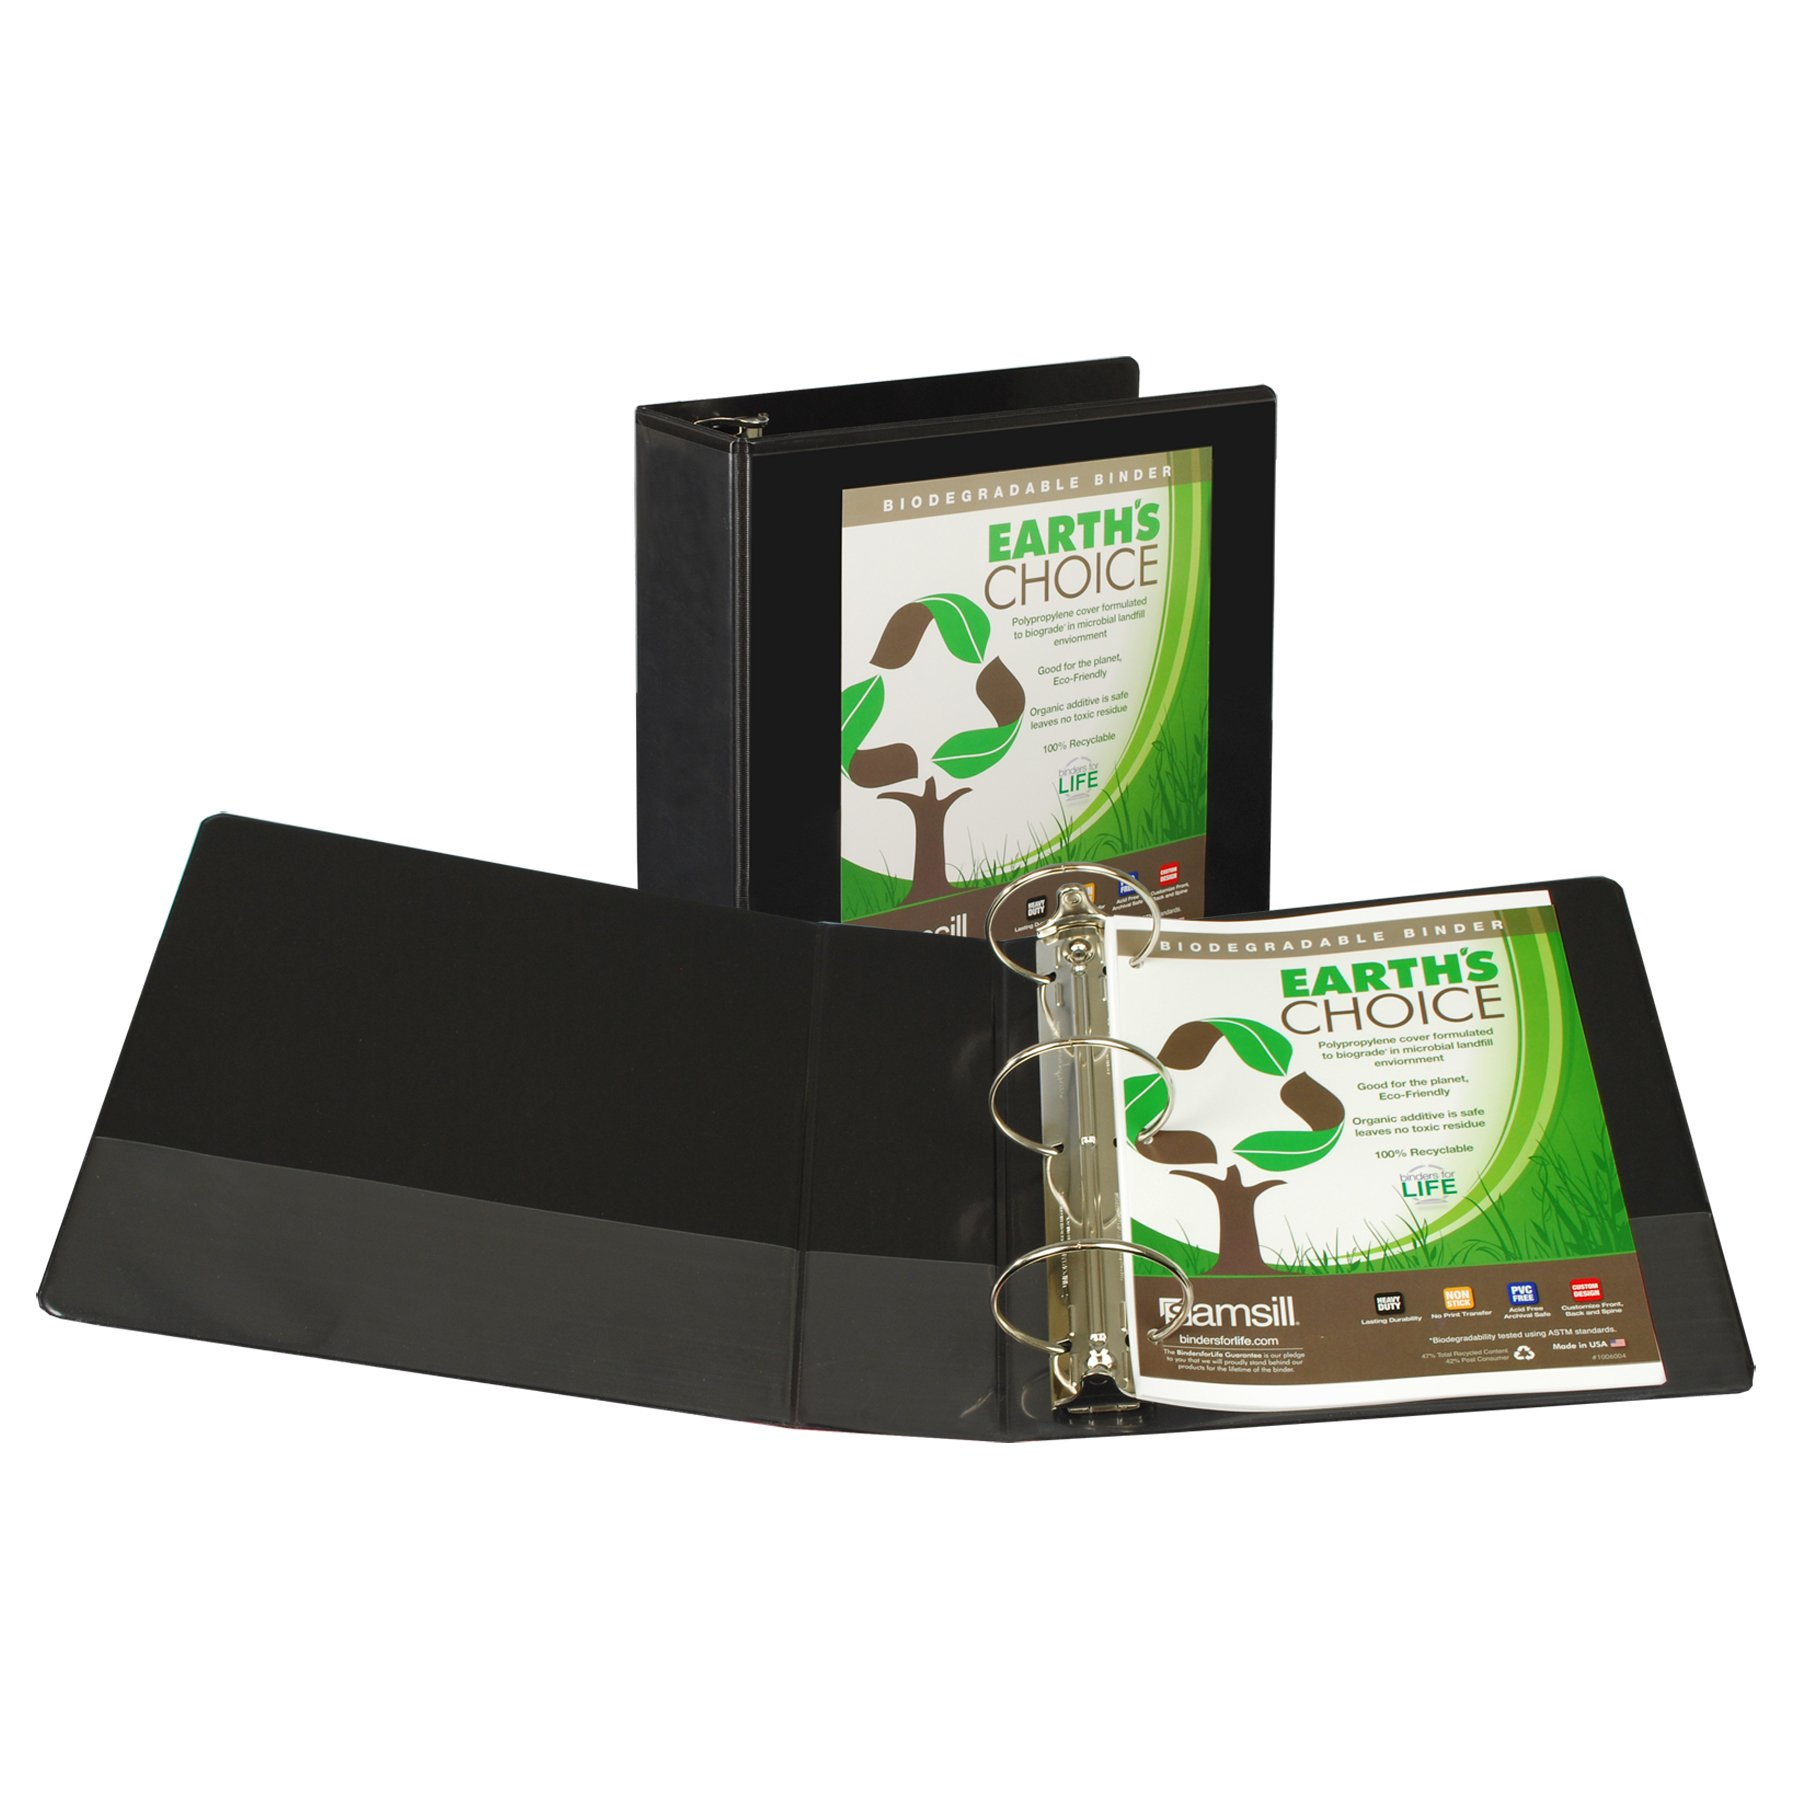 Samsill Earth's Choice Biobased View Binder, 3 Ring Binder, 4 Inch, Round Ring, Customizable, Black by Samsill (Image #3)